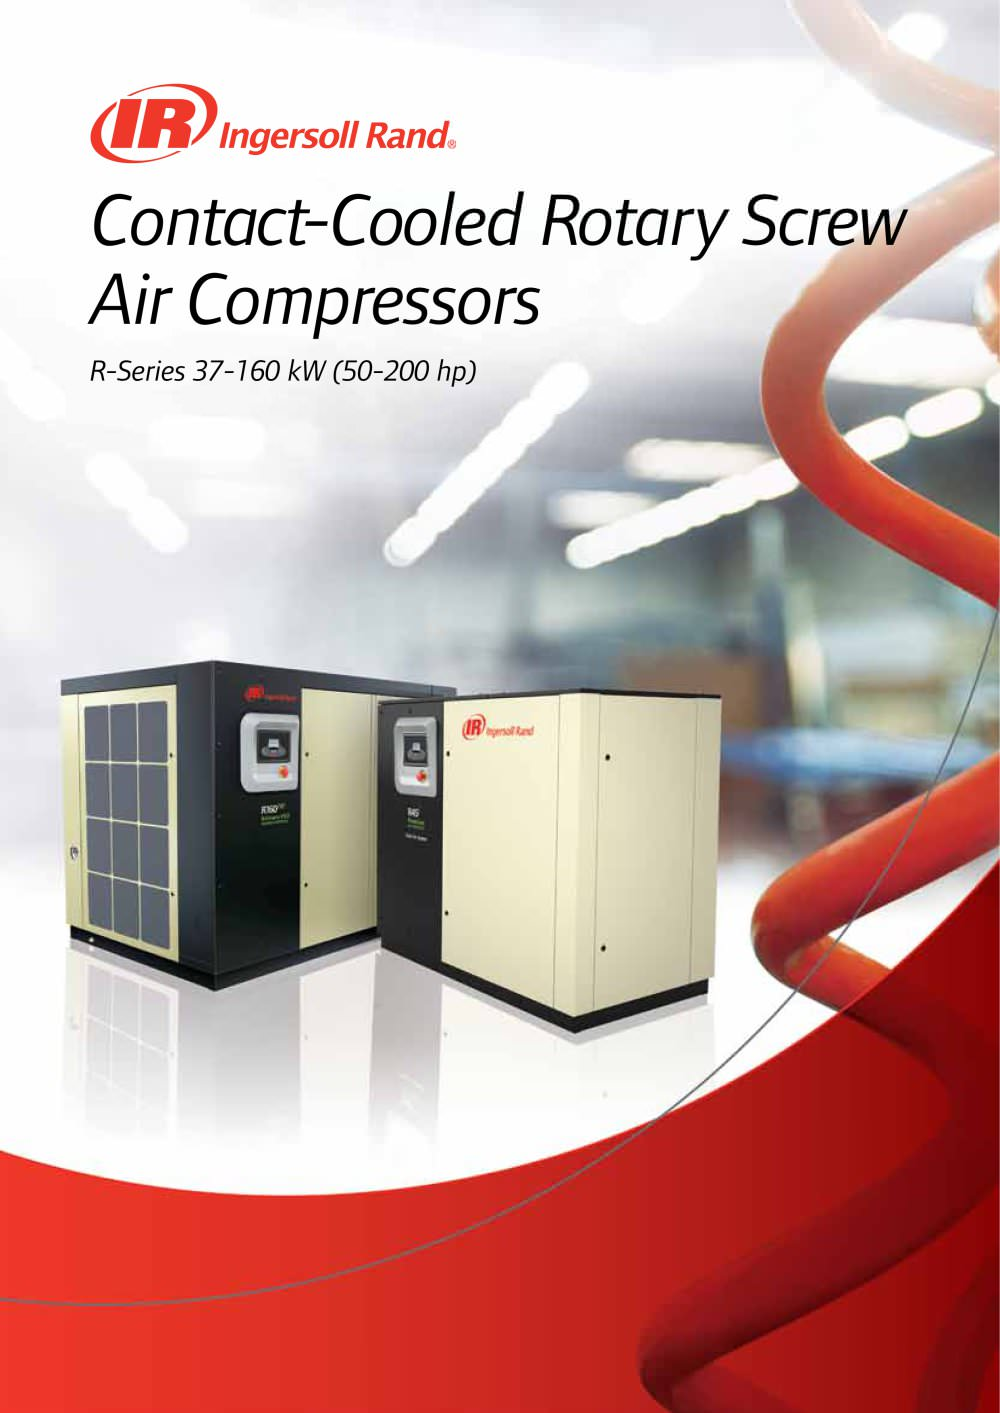 R-Series 37-160 kW - 1 / 8 Pages